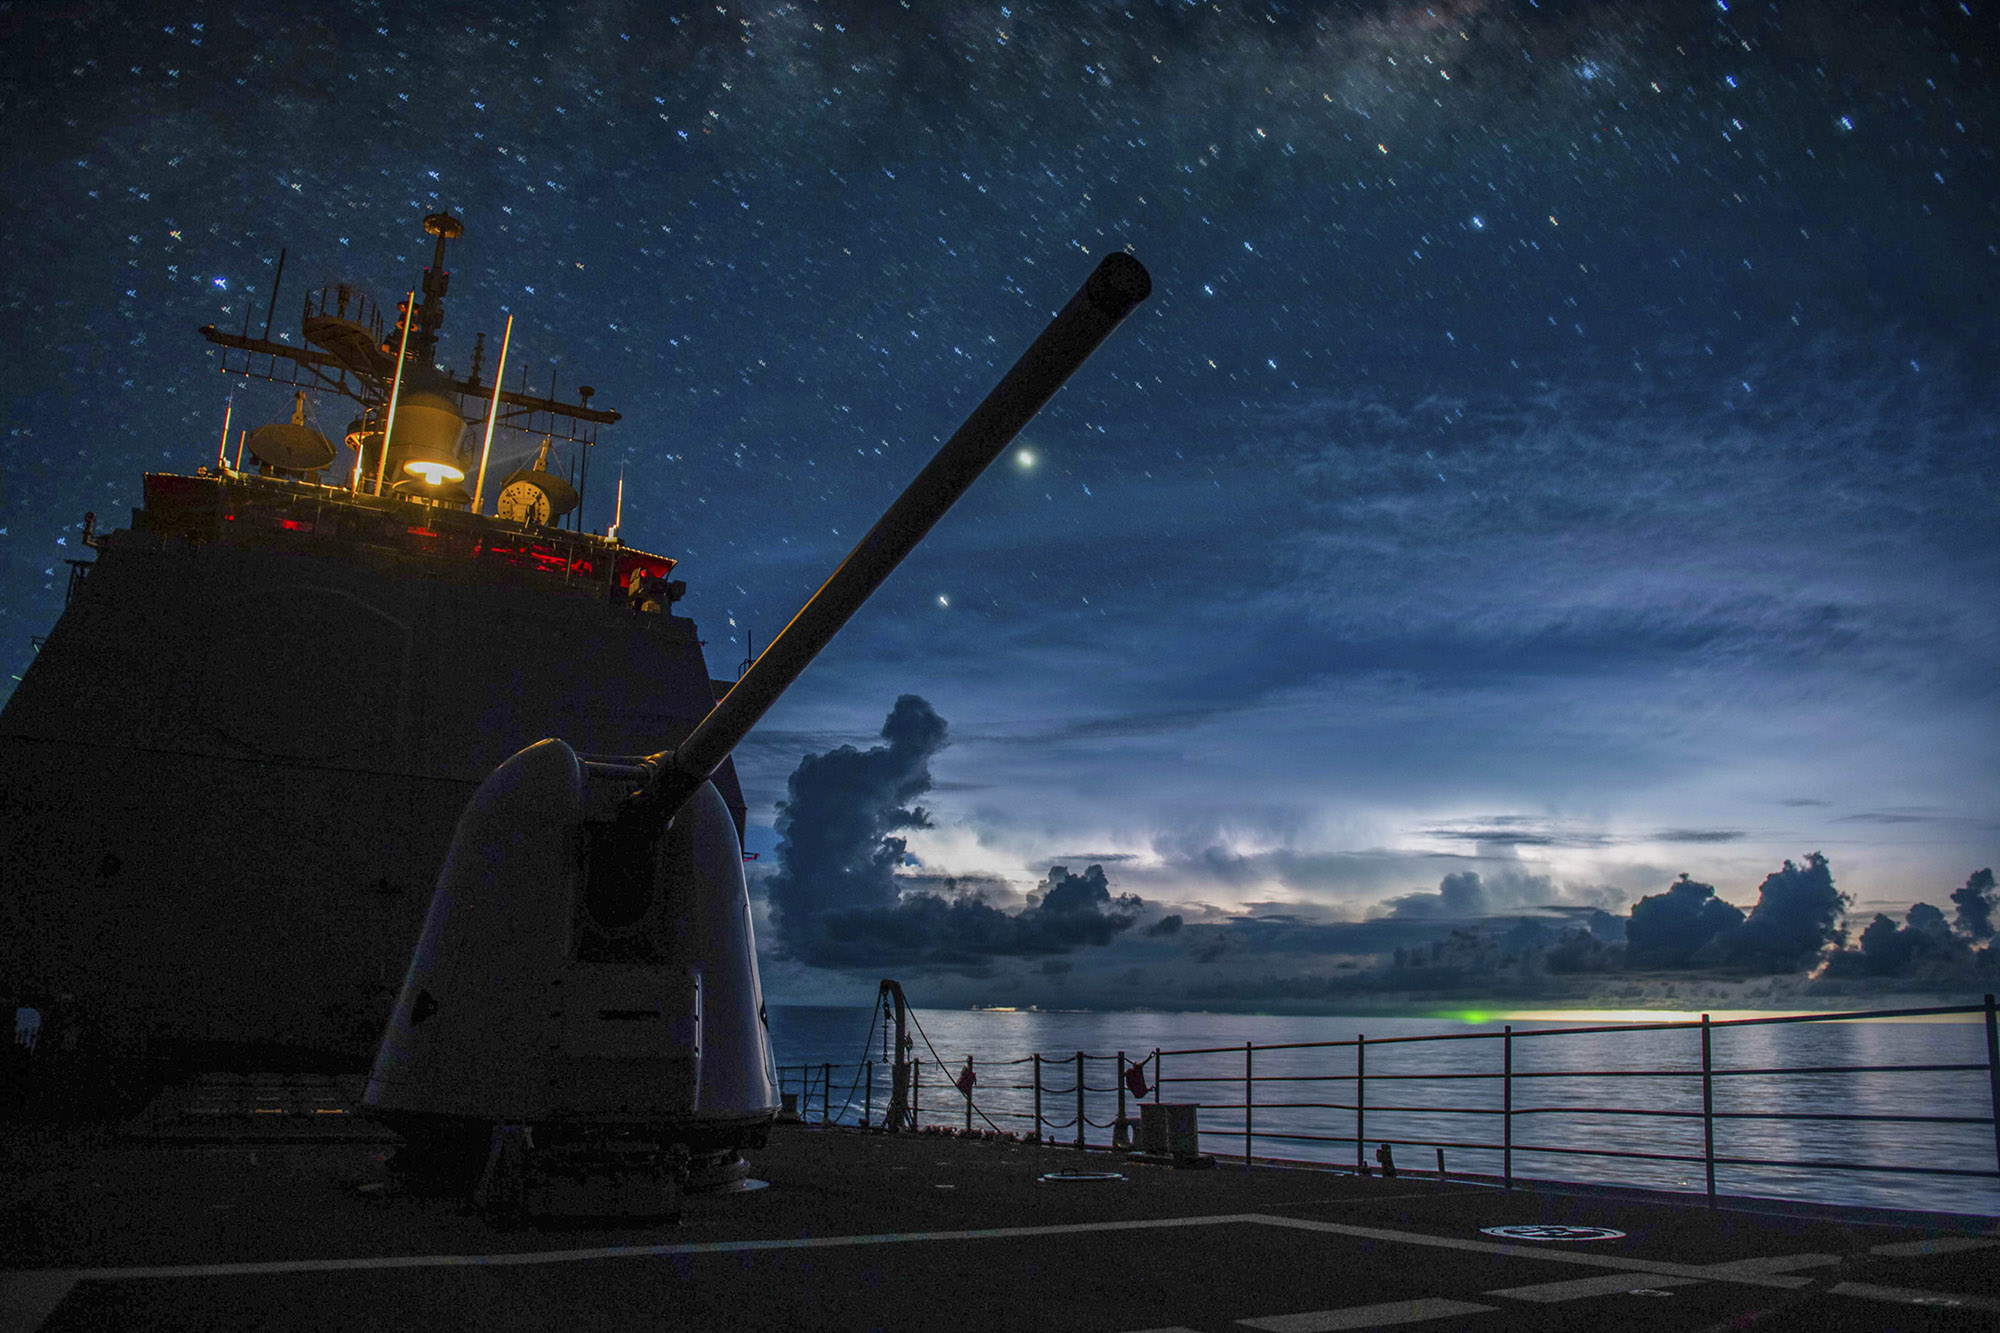 The Ticonderoga-class guided-missile cruiser USS Princeton (CG 59) steams through the night in the South China Sea on July 15, 2020. (MC2 Logan C. Kellums/Navy)